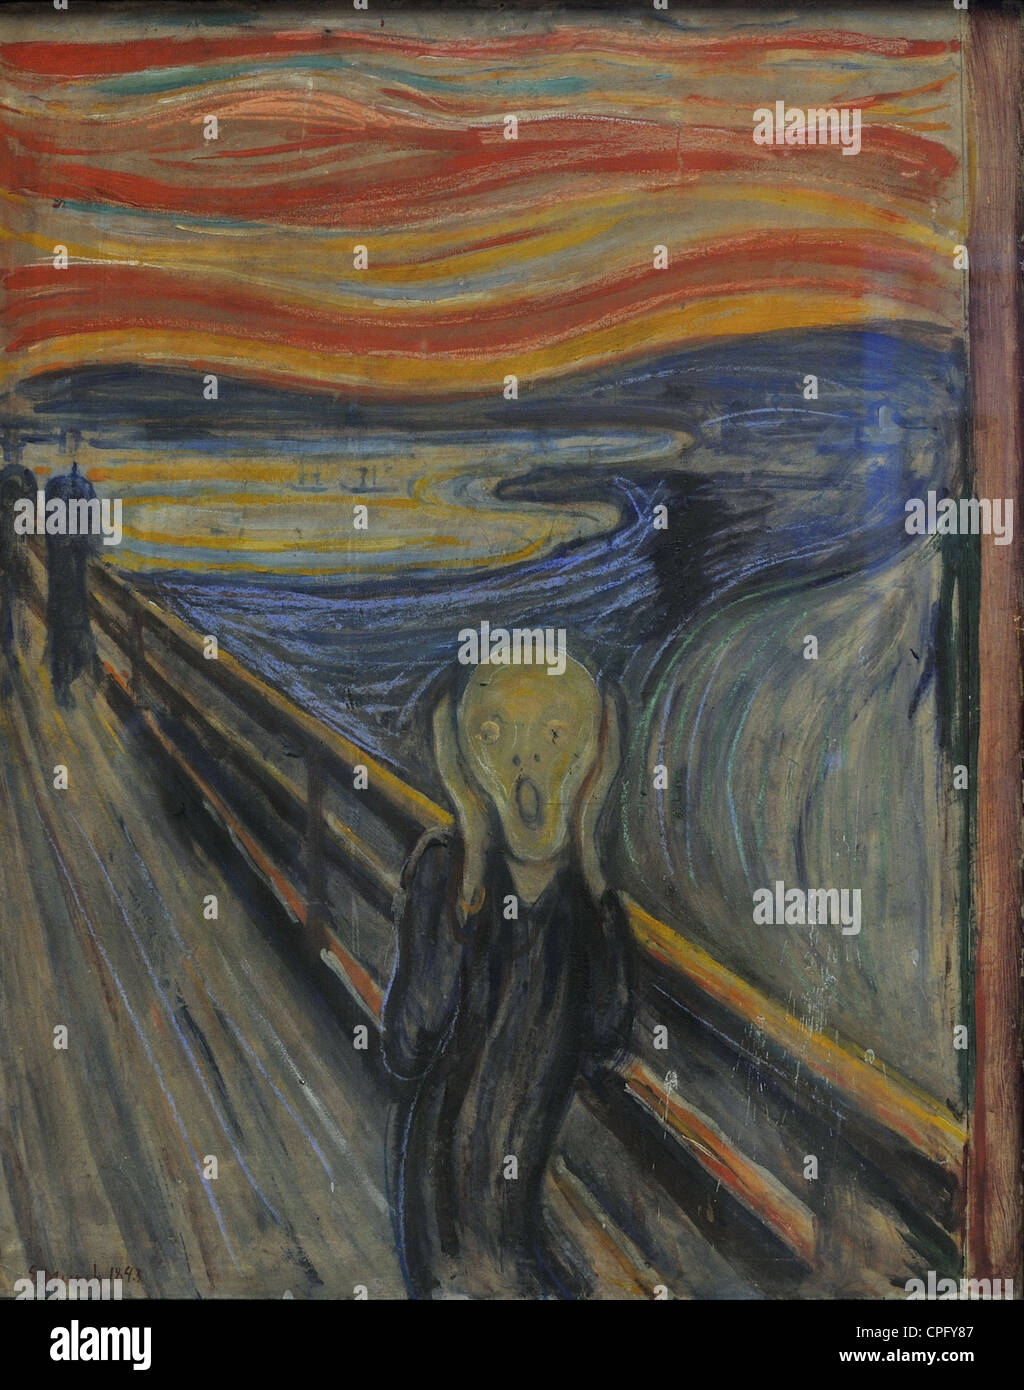 critical analysis of edvard munchs the scream The sky in edvard munch's the scream fred prata, alan robock, and richard hamblyn the sky in munch's famous painting is compared with photographs of a display of nacreous clouds.